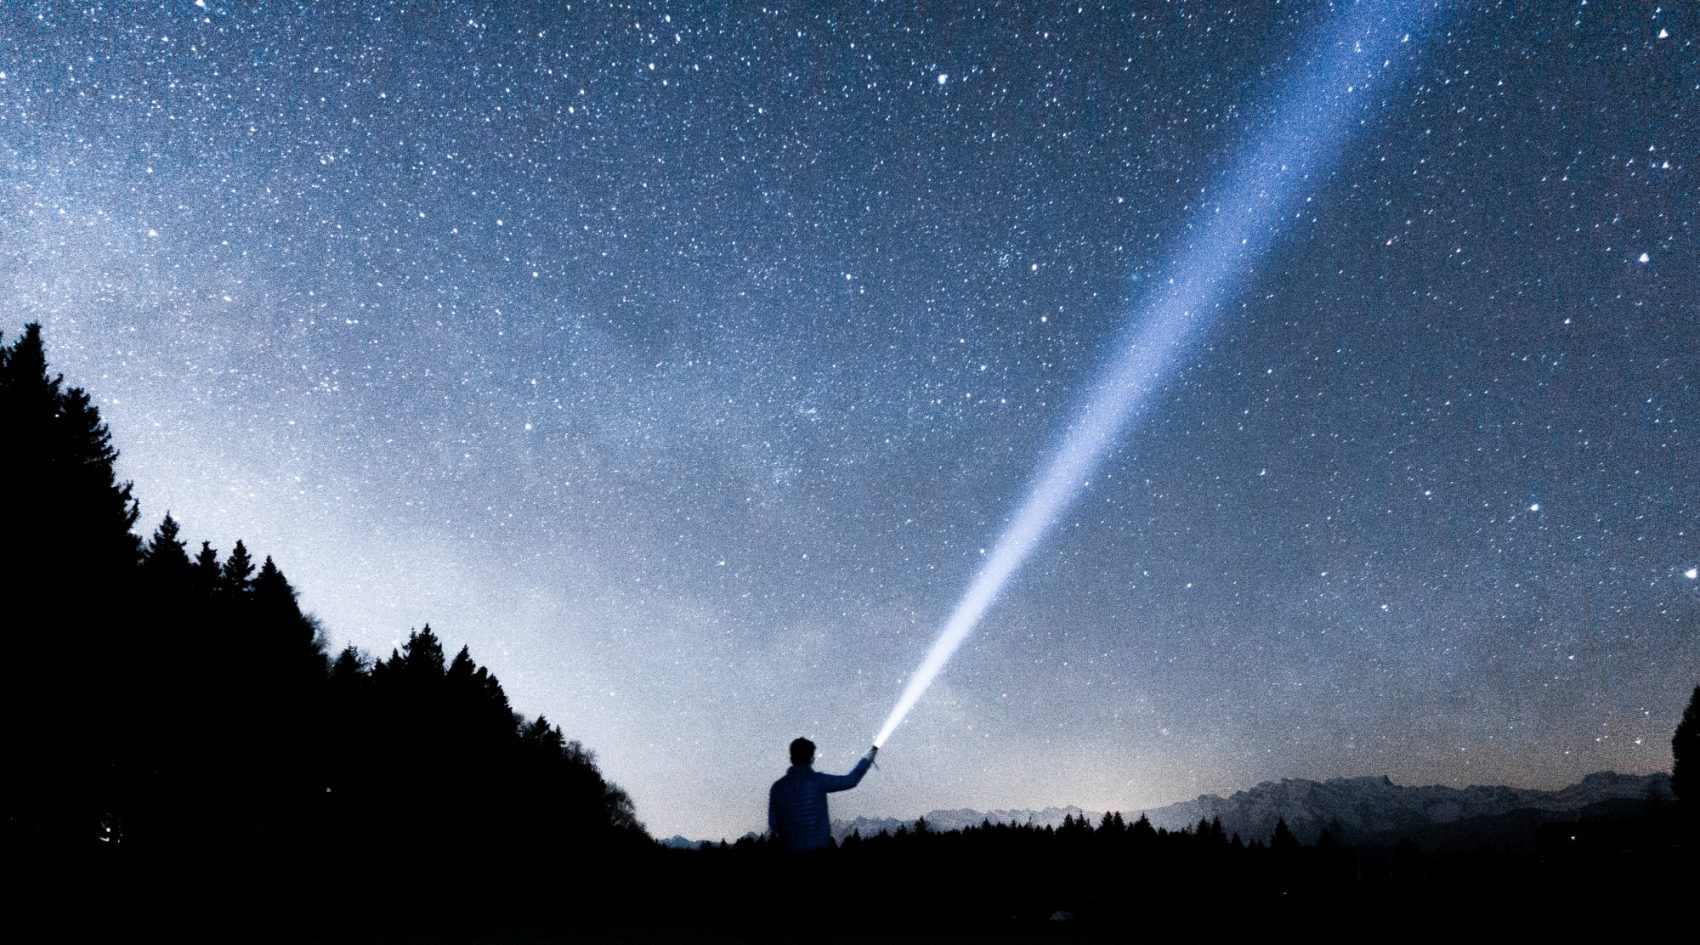 He doesn't really put the stars in the night sky, but, Bill Eville writes, while his children are far from home, he is still trying so hard to be their guiding light. (Martin Sattler/Unsplash)